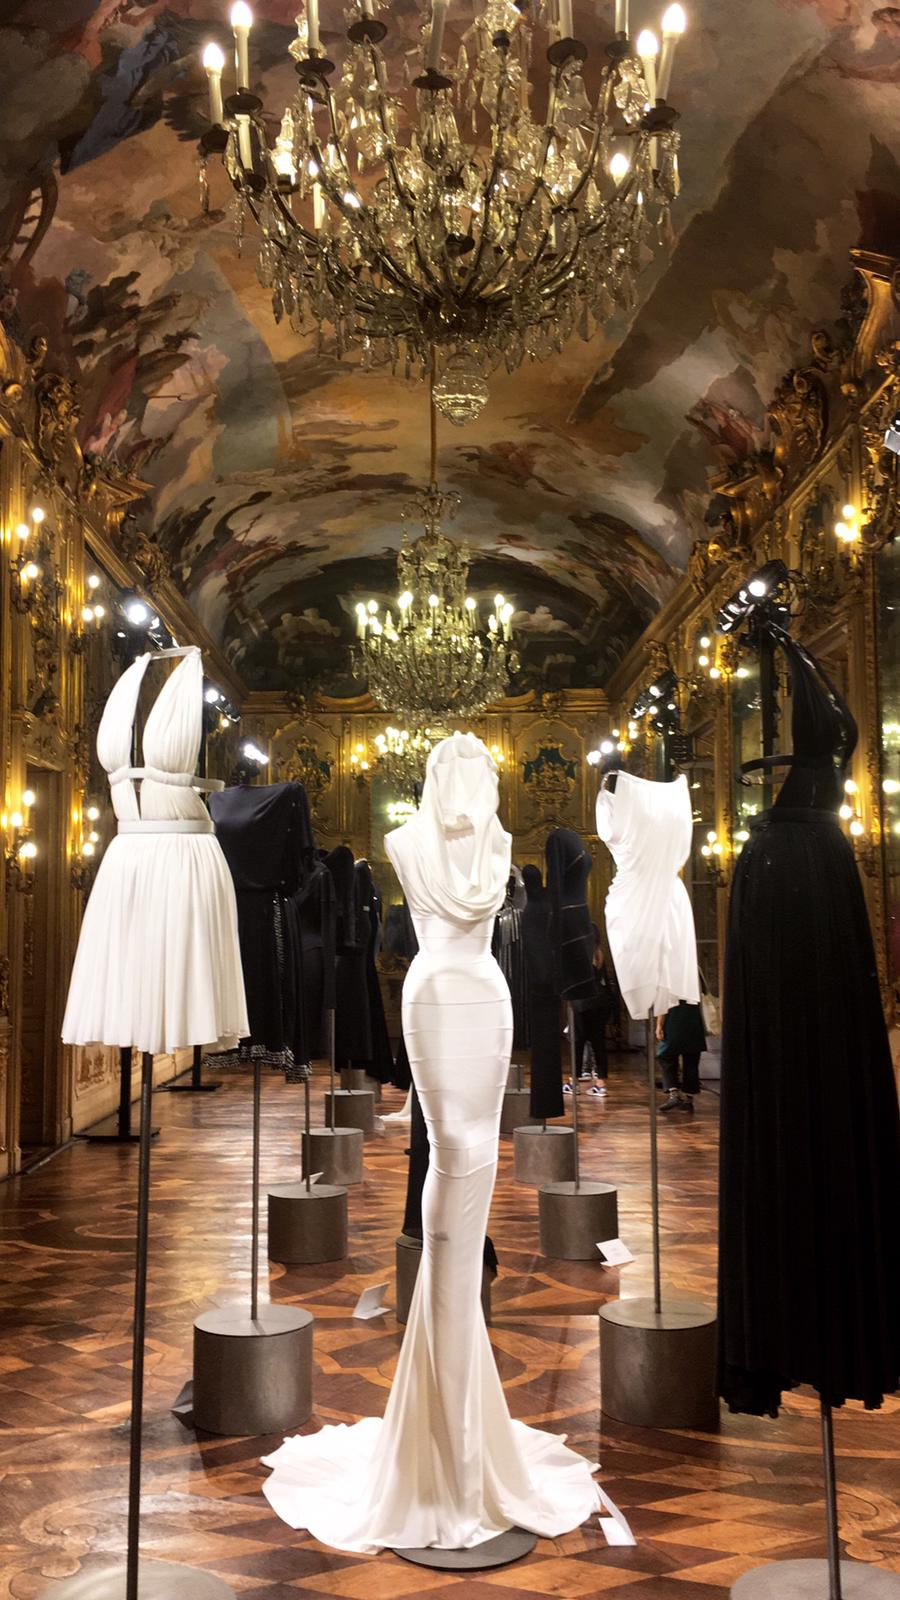 Milan Fashion Week: events, shows and shopping experiences